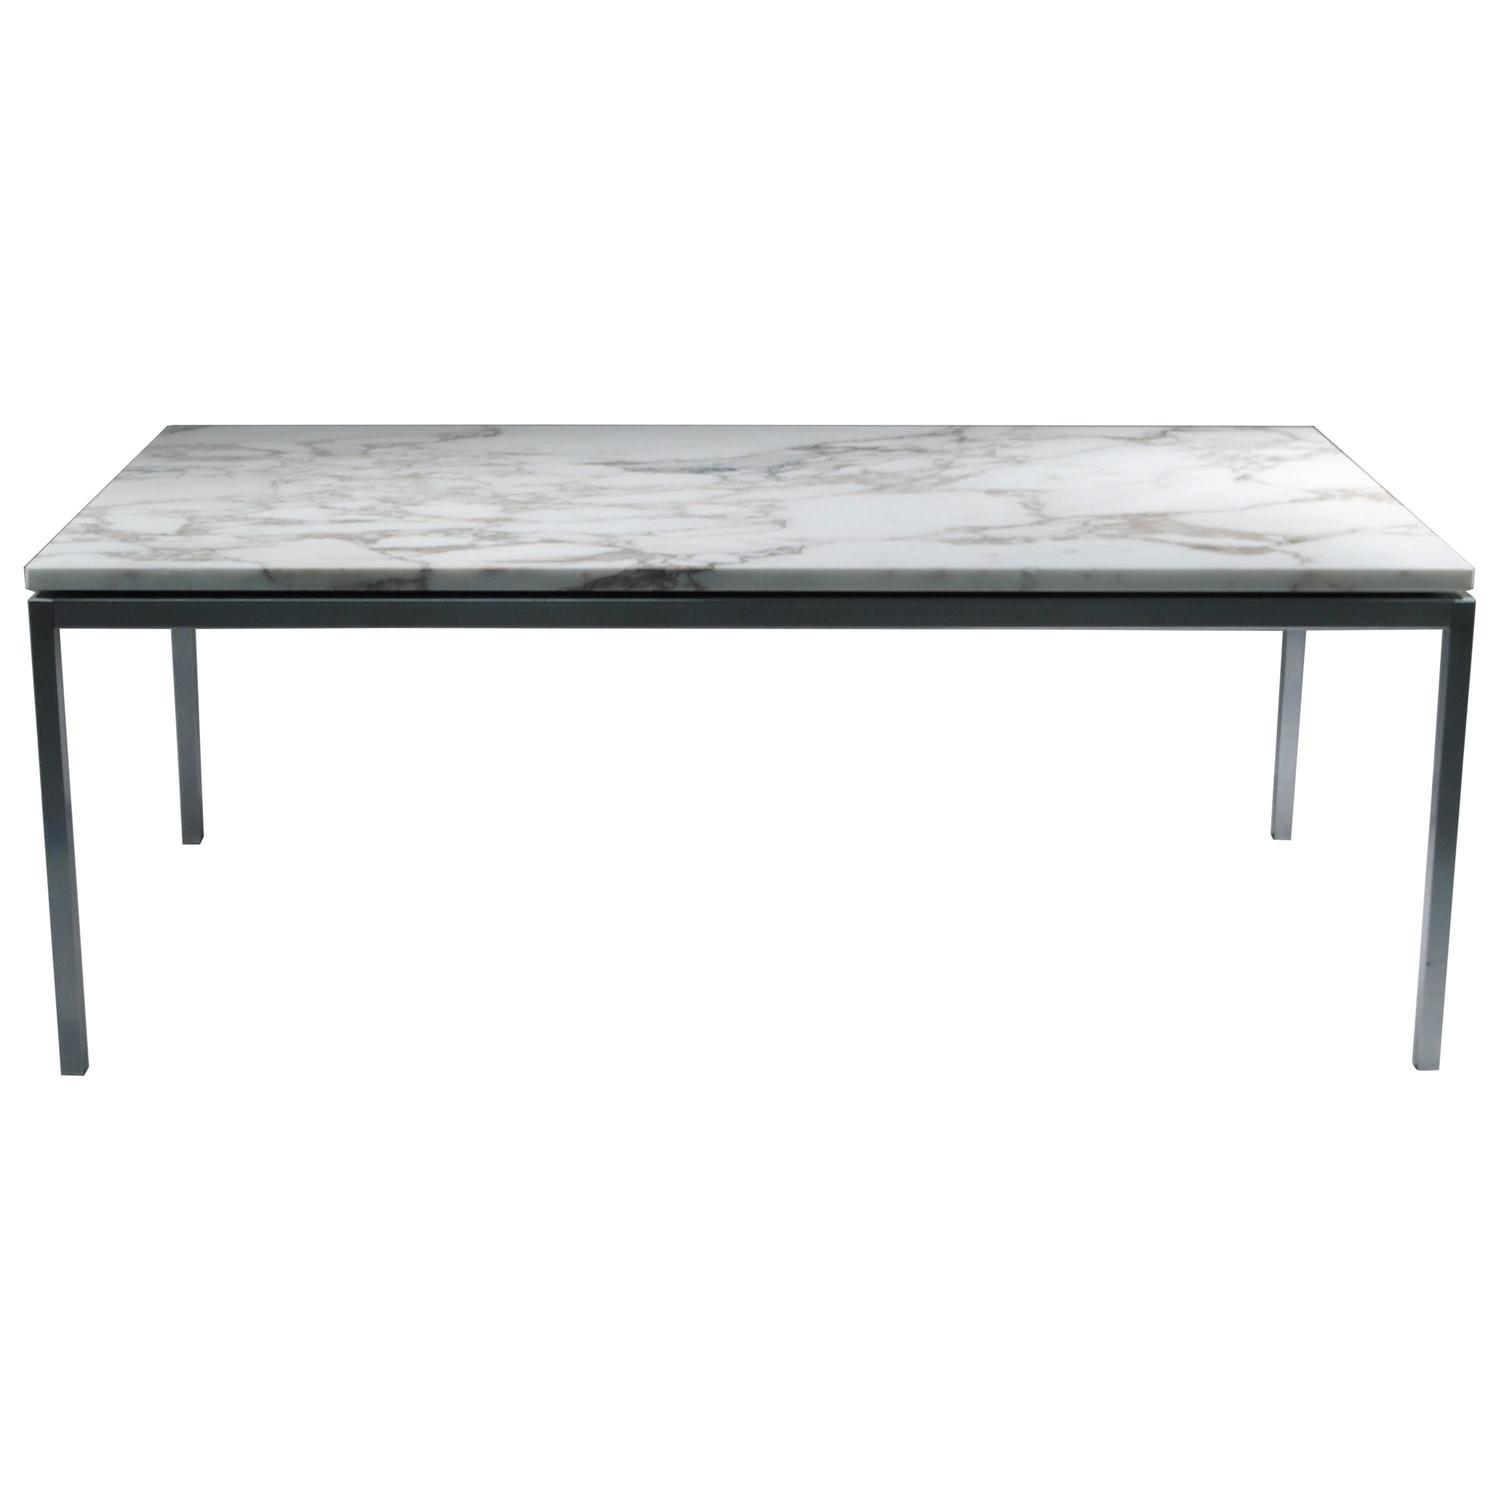 florence knoll marble top coffee table at 1stdibs. Black Bedroom Furniture Sets. Home Design Ideas